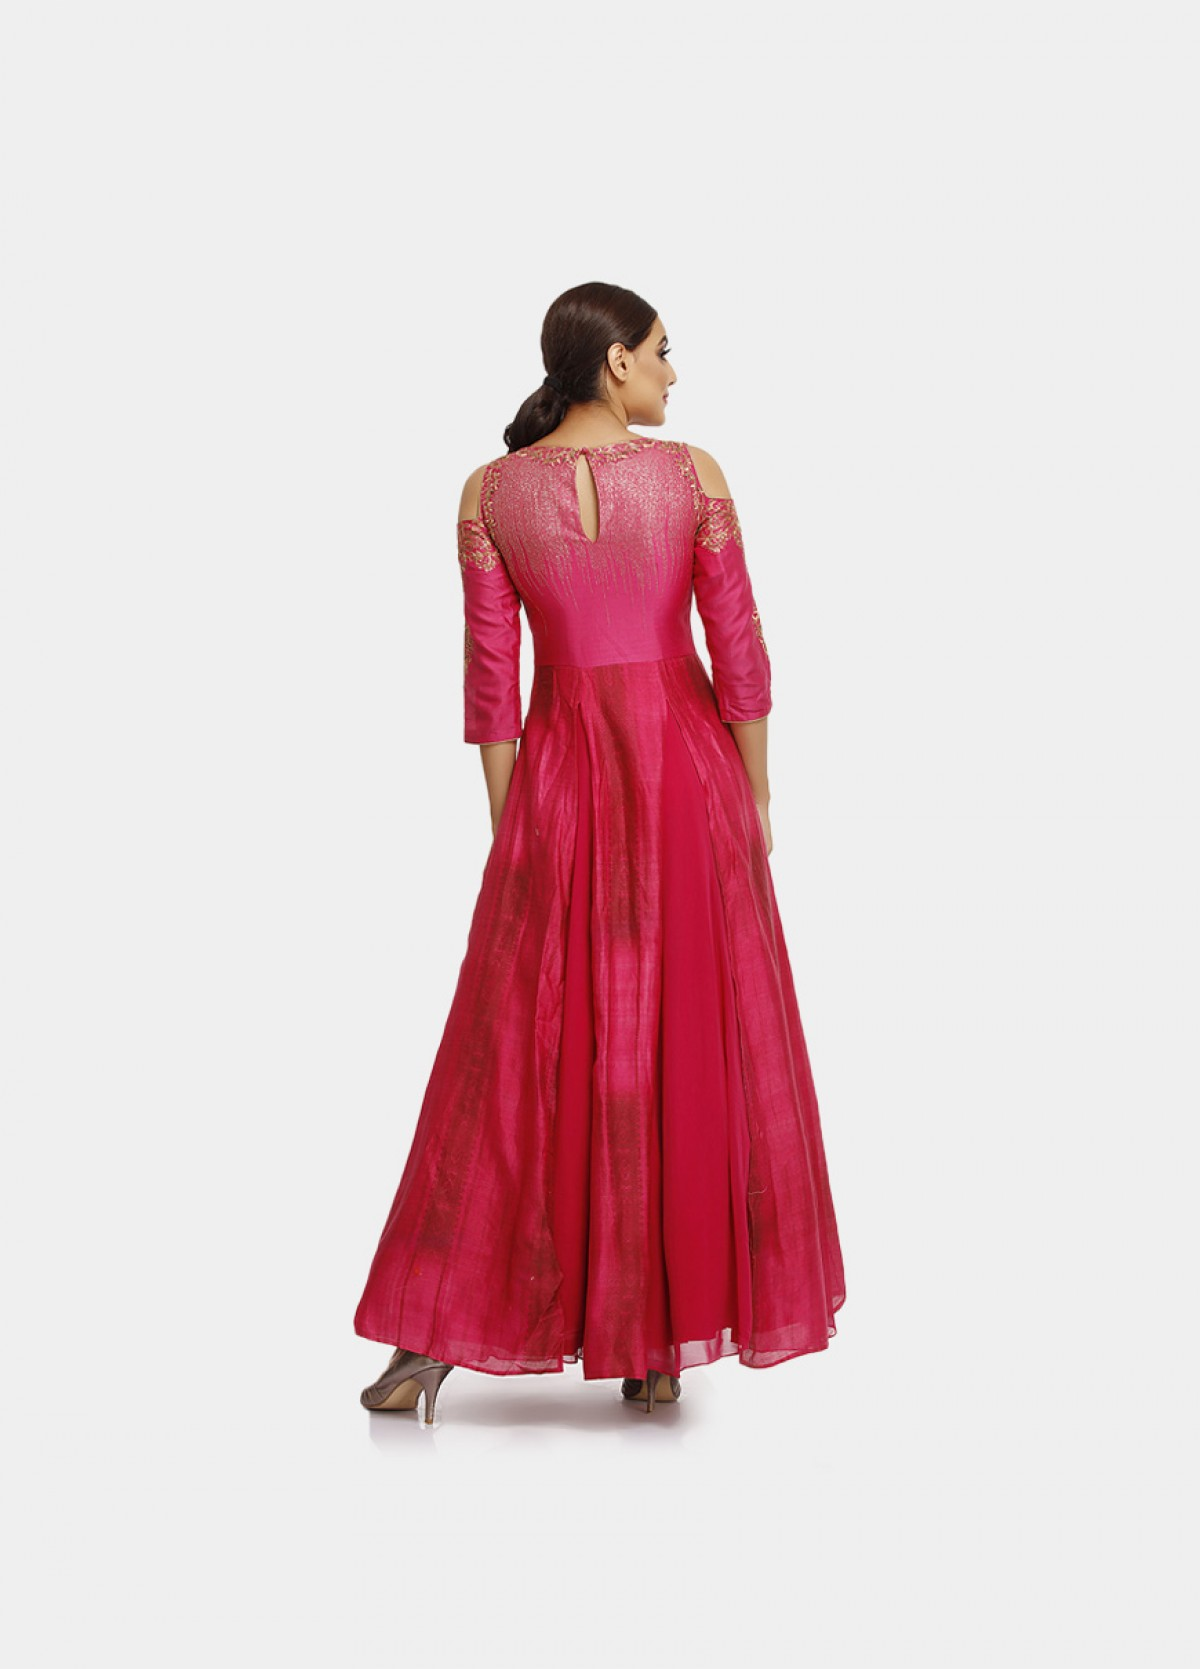 The Woven Primrose Gown